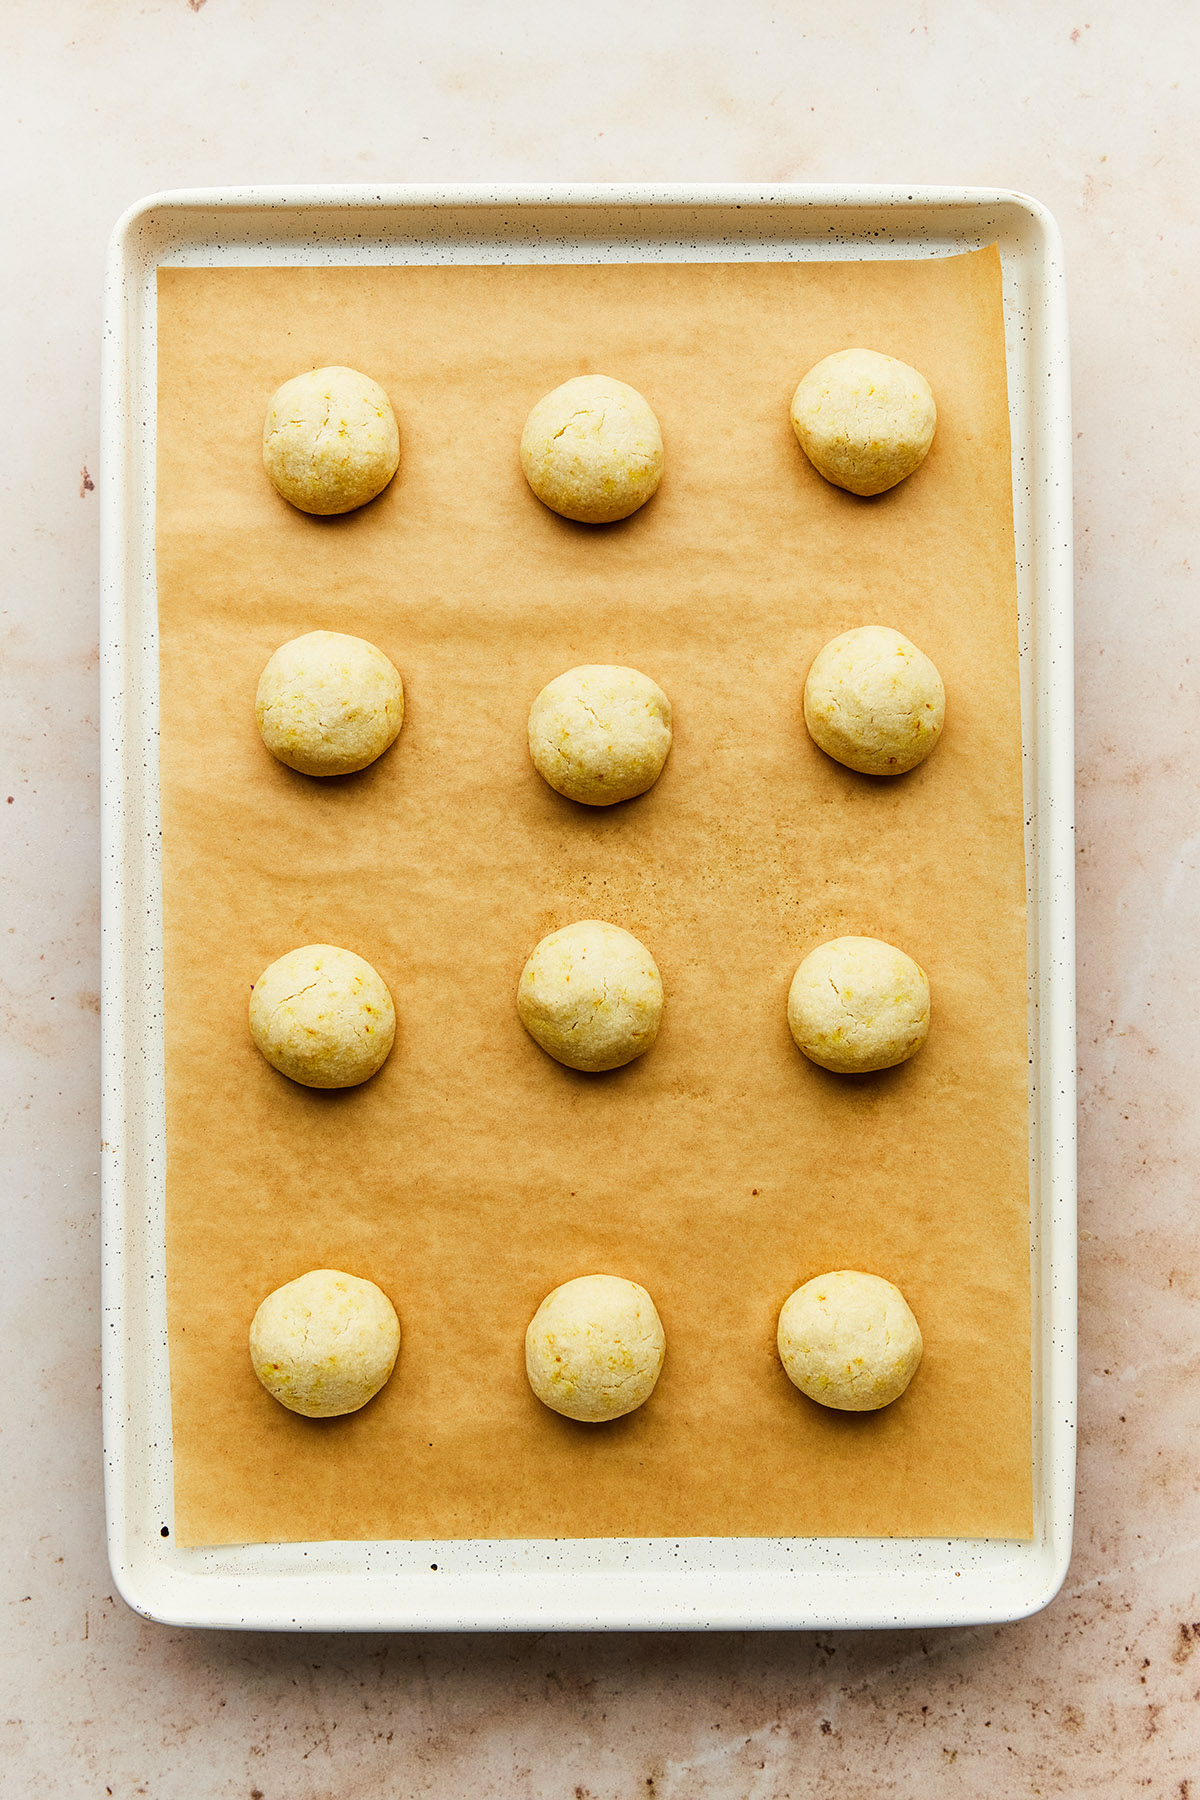 Small round baked cookies on a baking sheet lined with parchment paper.